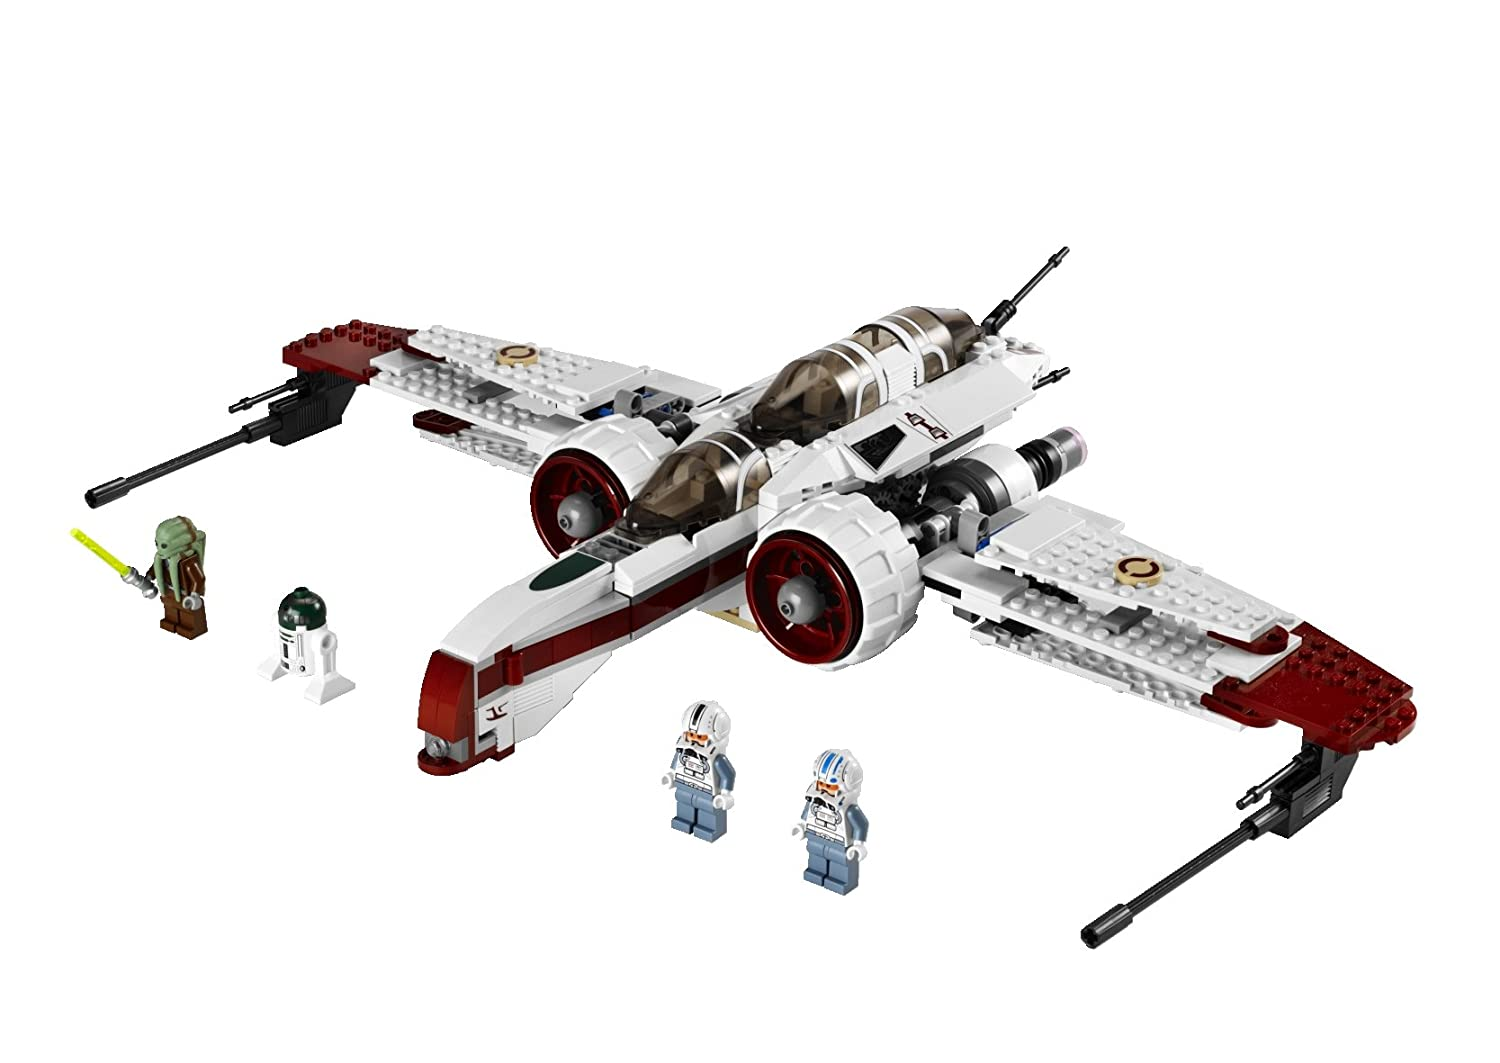 LEGO A-90 Scorpion Starfighter by Aryck-The-One on DeviantArt